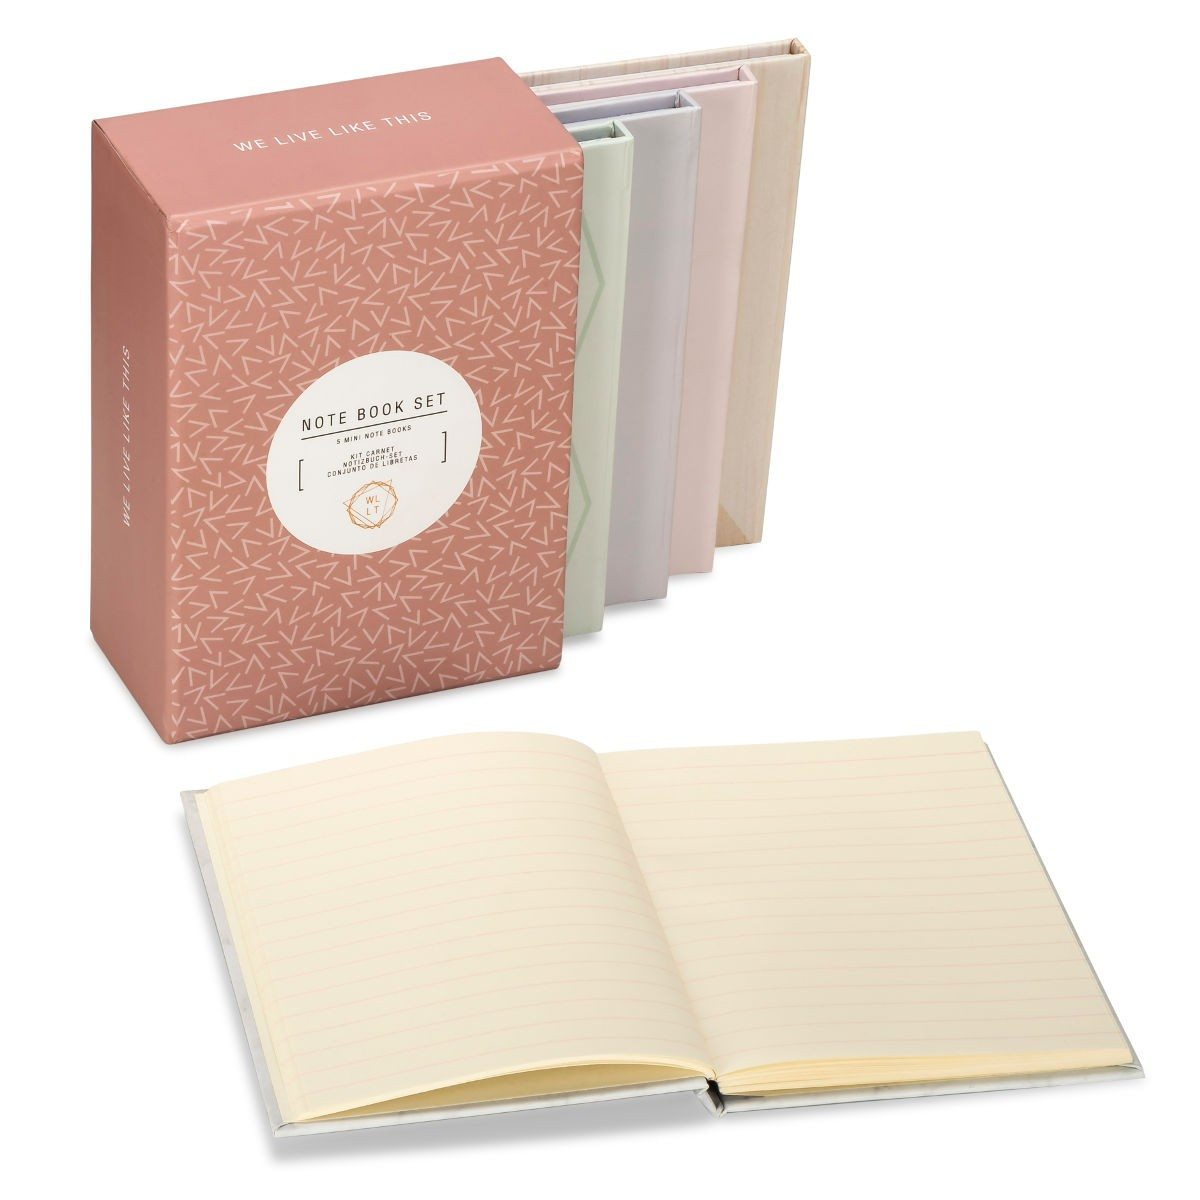 Tolles We Live Like This Mini Notebook-Set